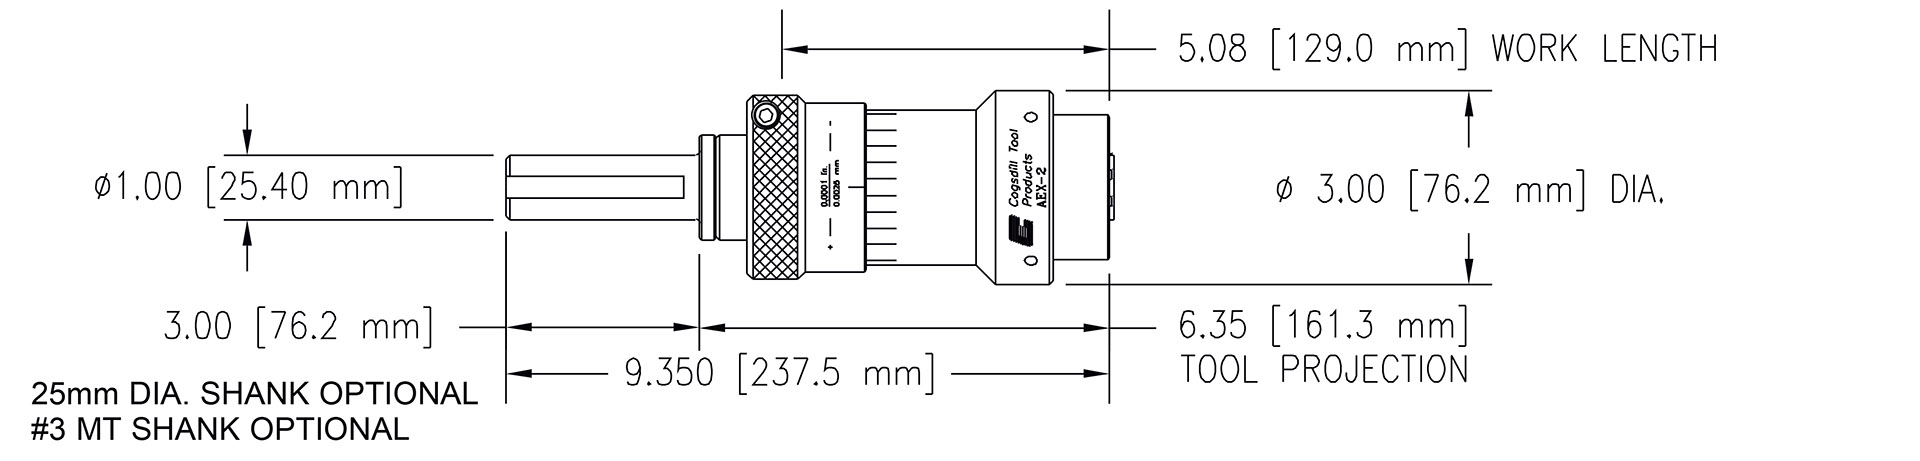 AEX-2 specifications